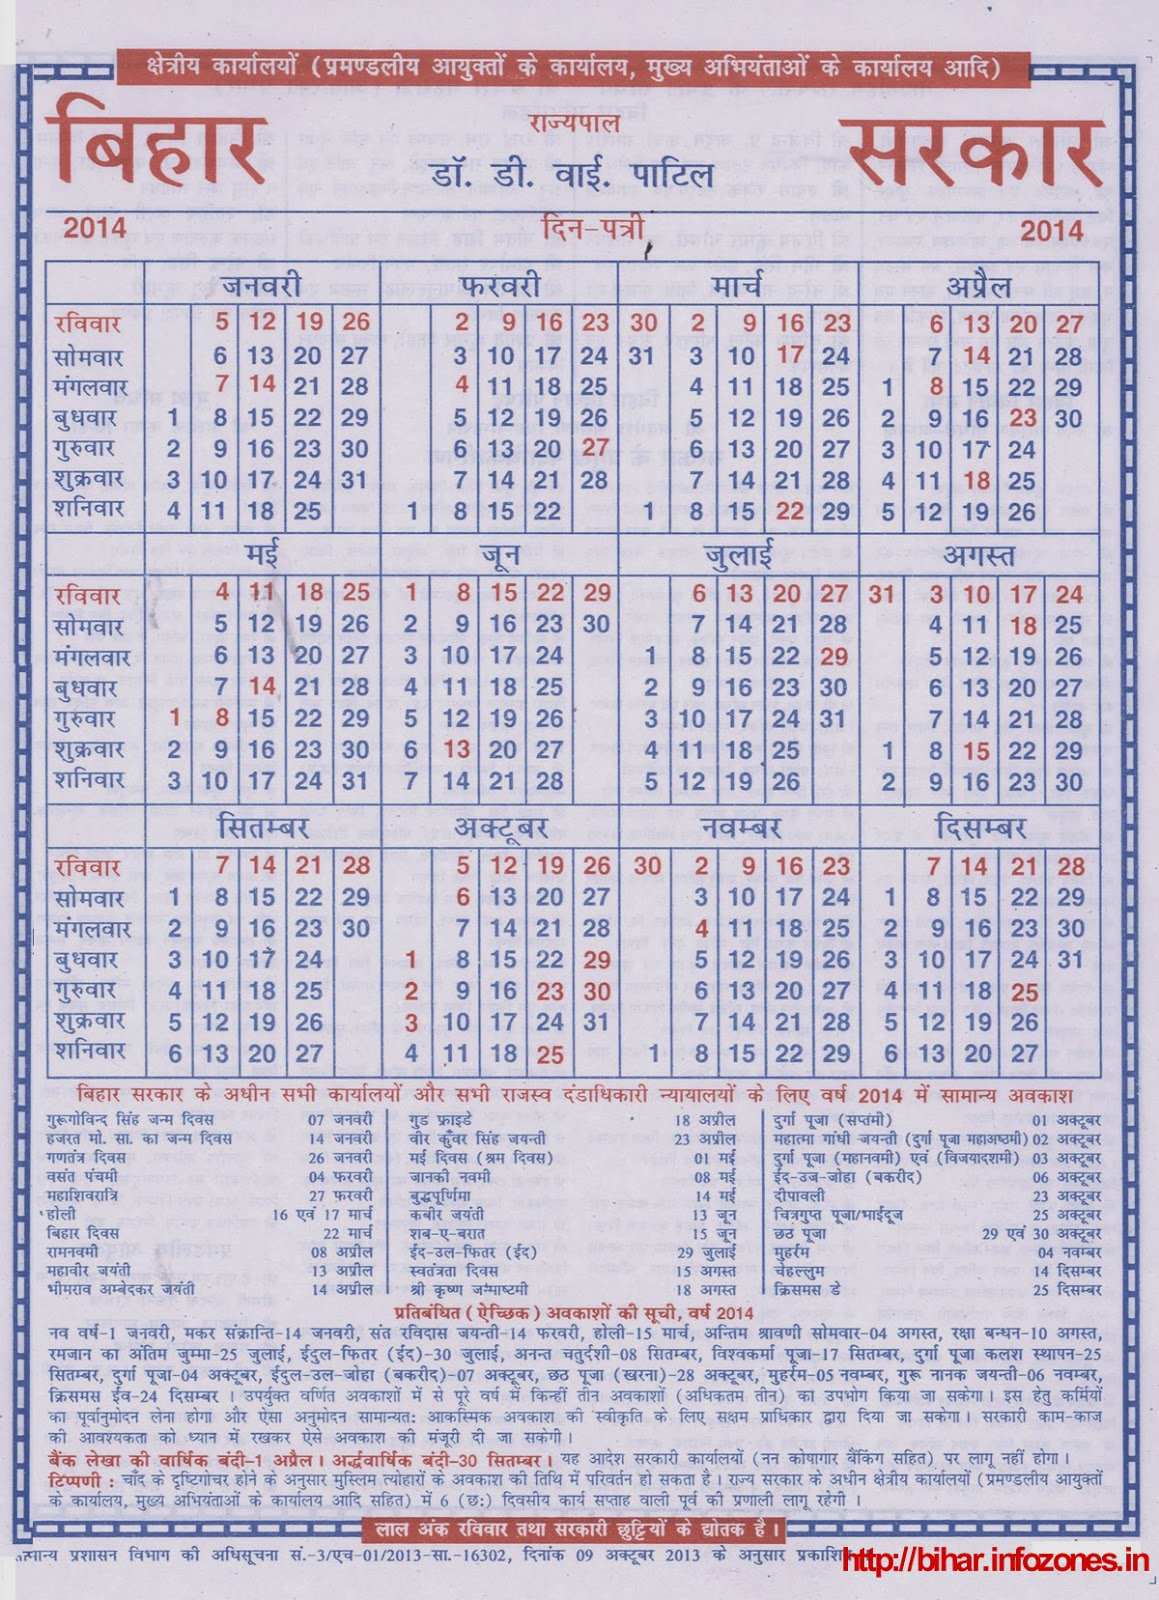 Bihar Government Calendar 2014 throughout Bihar Sarkar Clender